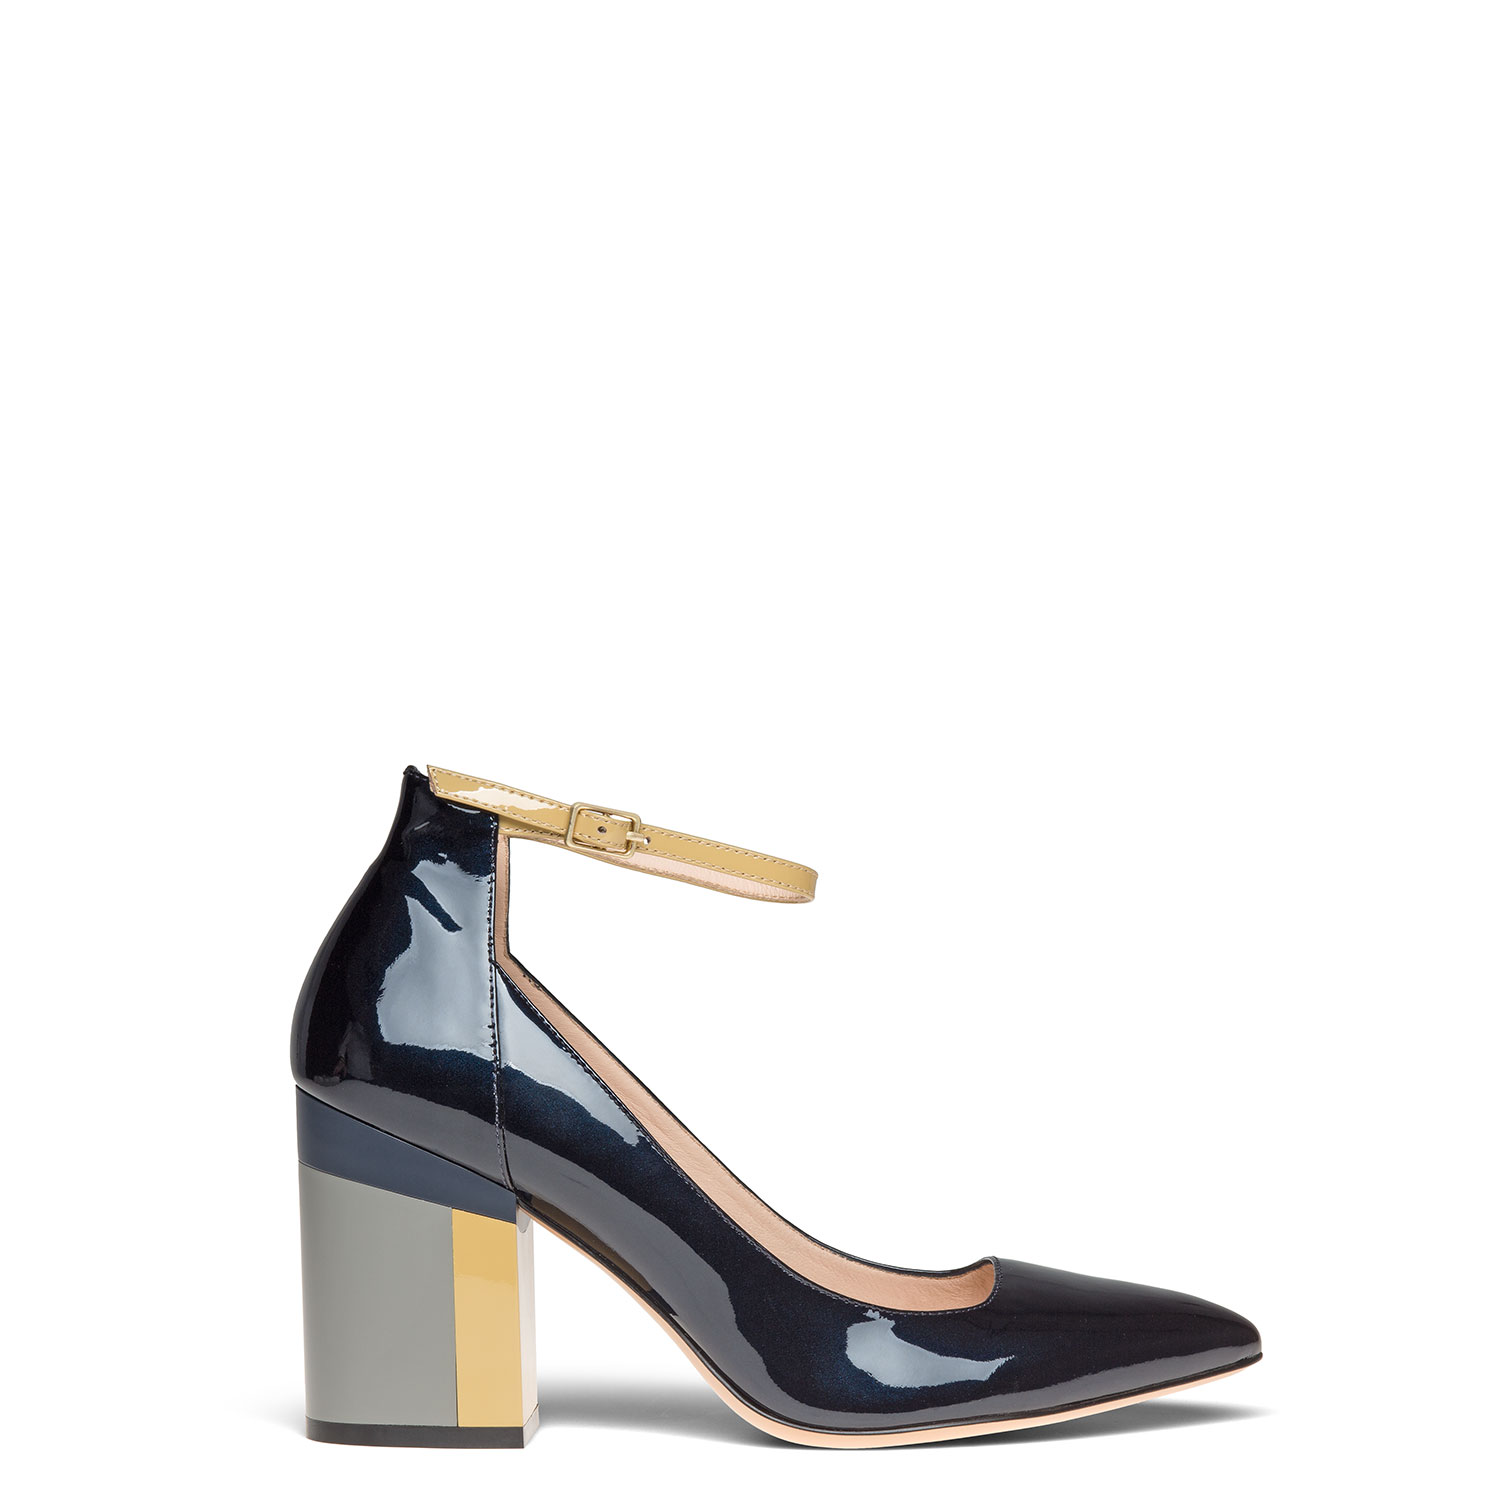 Women's shoes CARLO PAZOLINI FL-GEV1-20